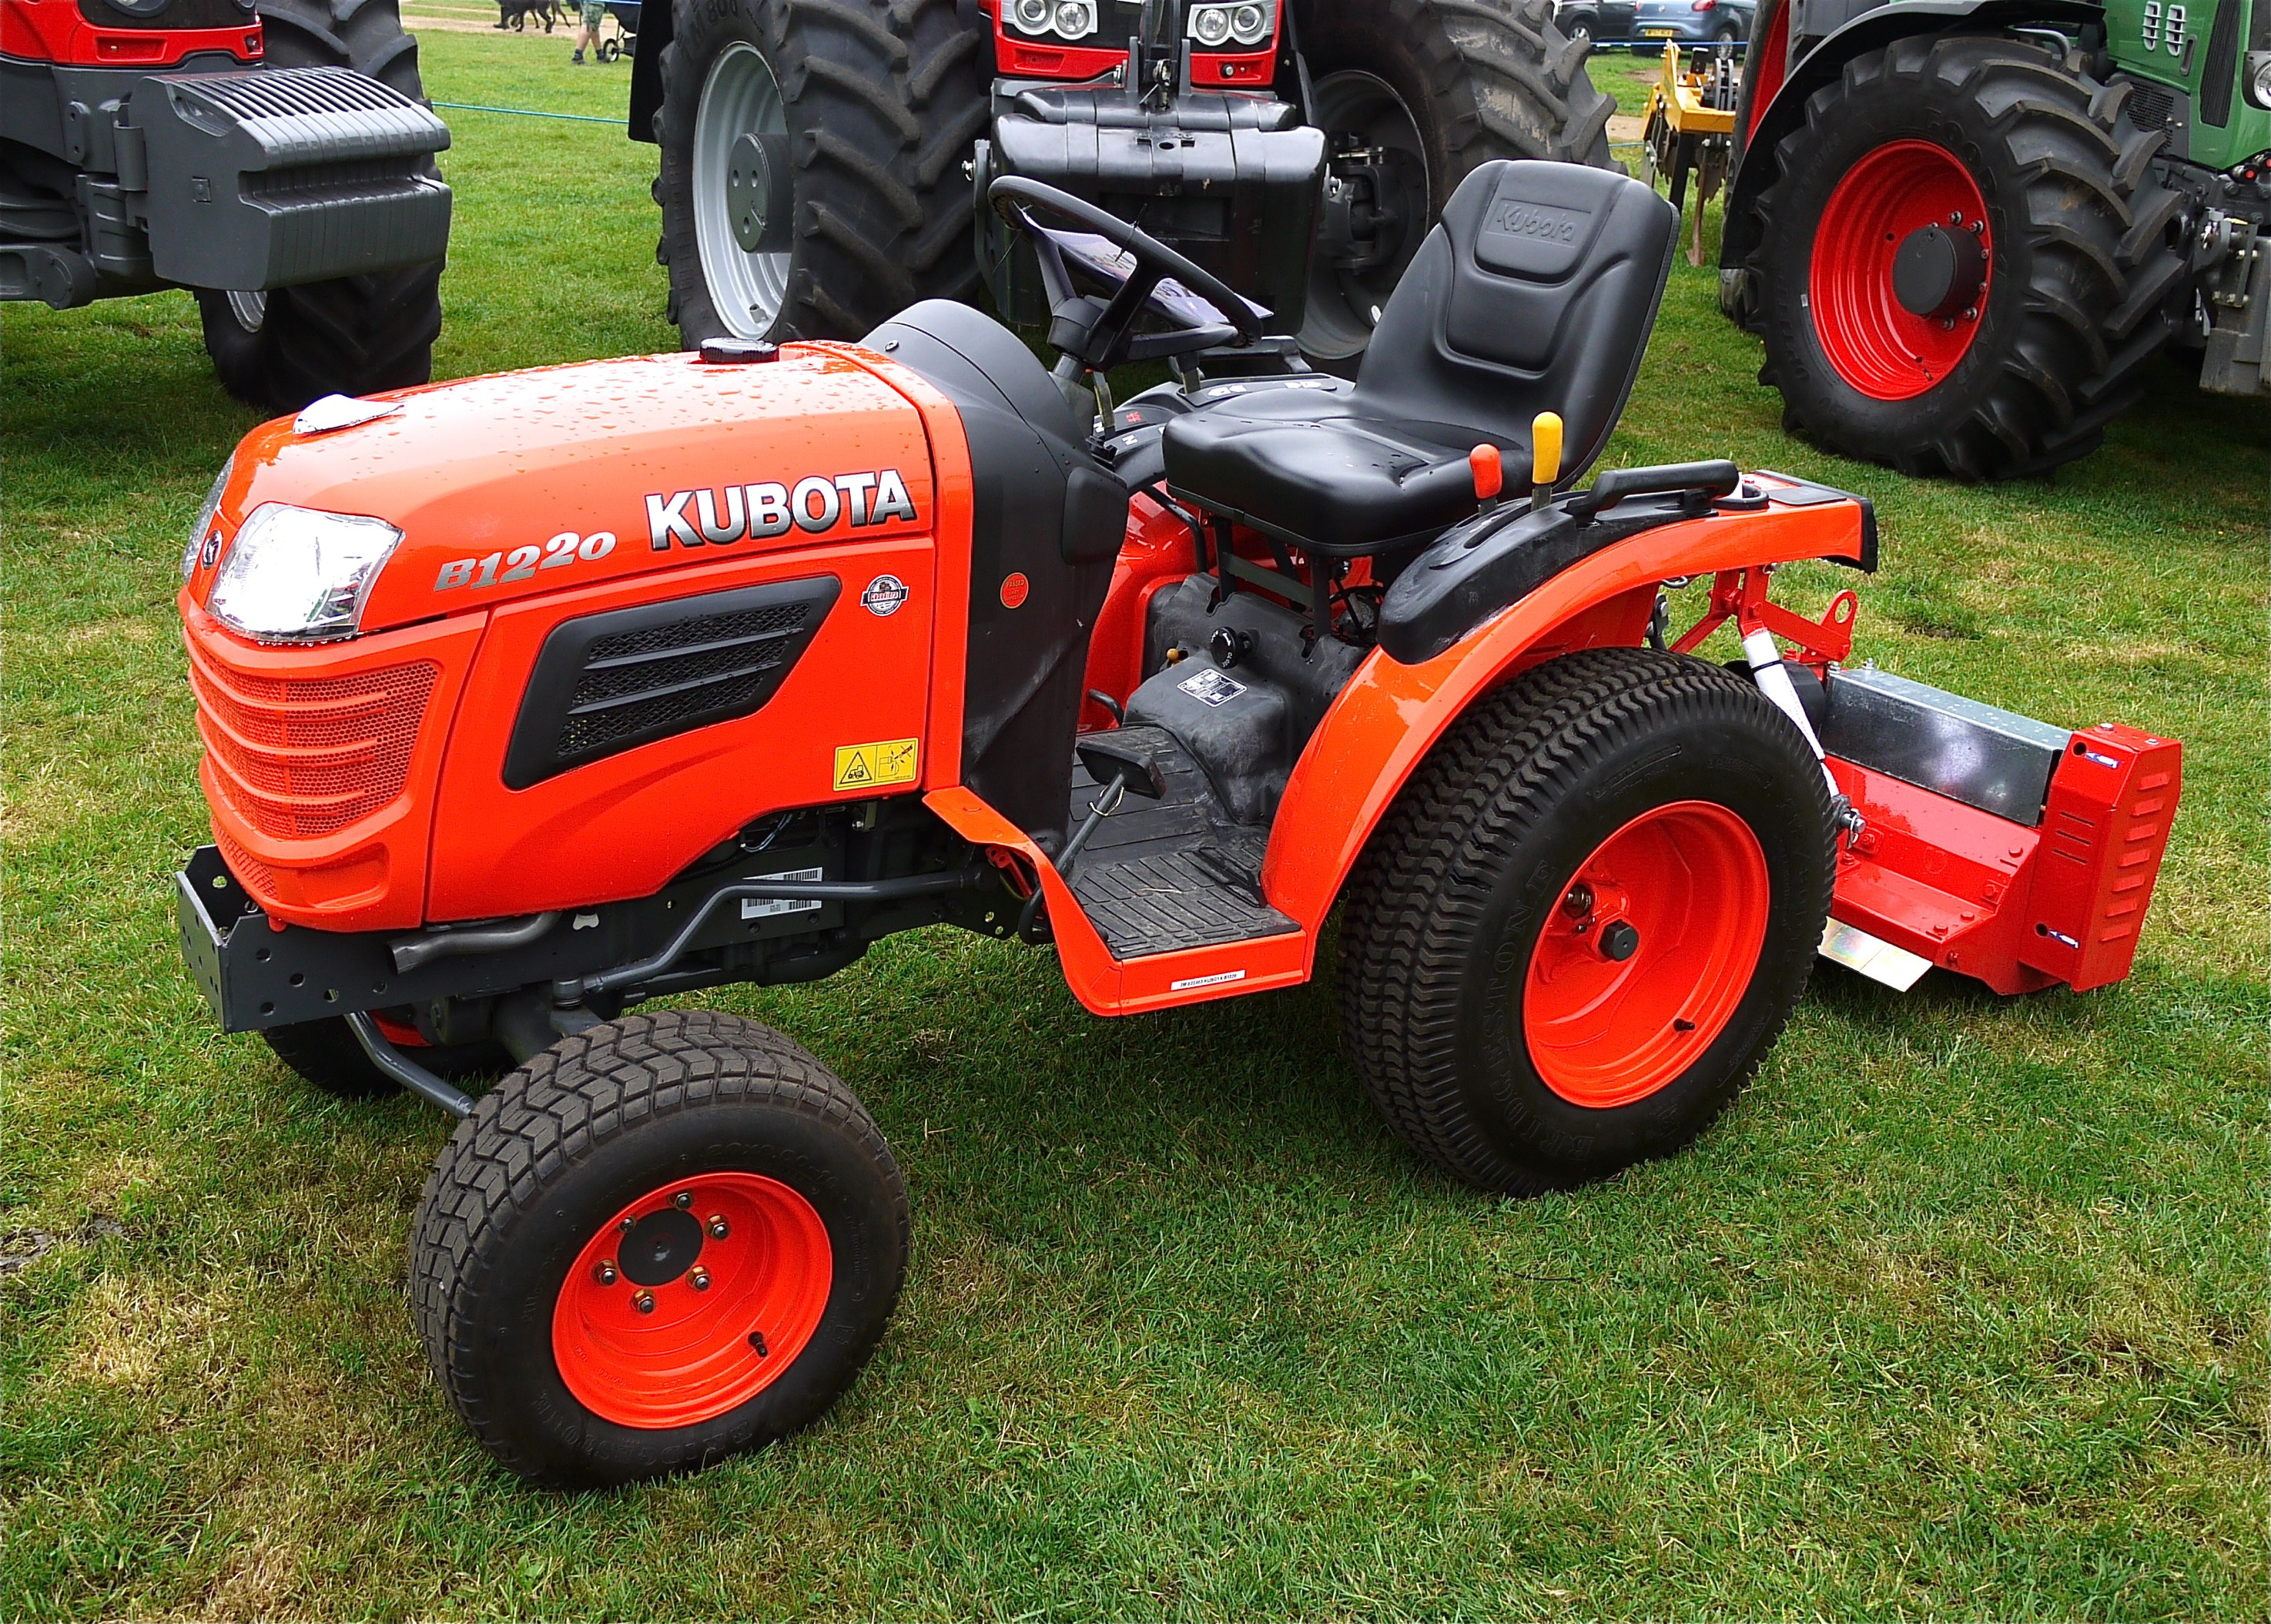 Small Garden Tractors : File kubota small tractor flickr mick lumix g